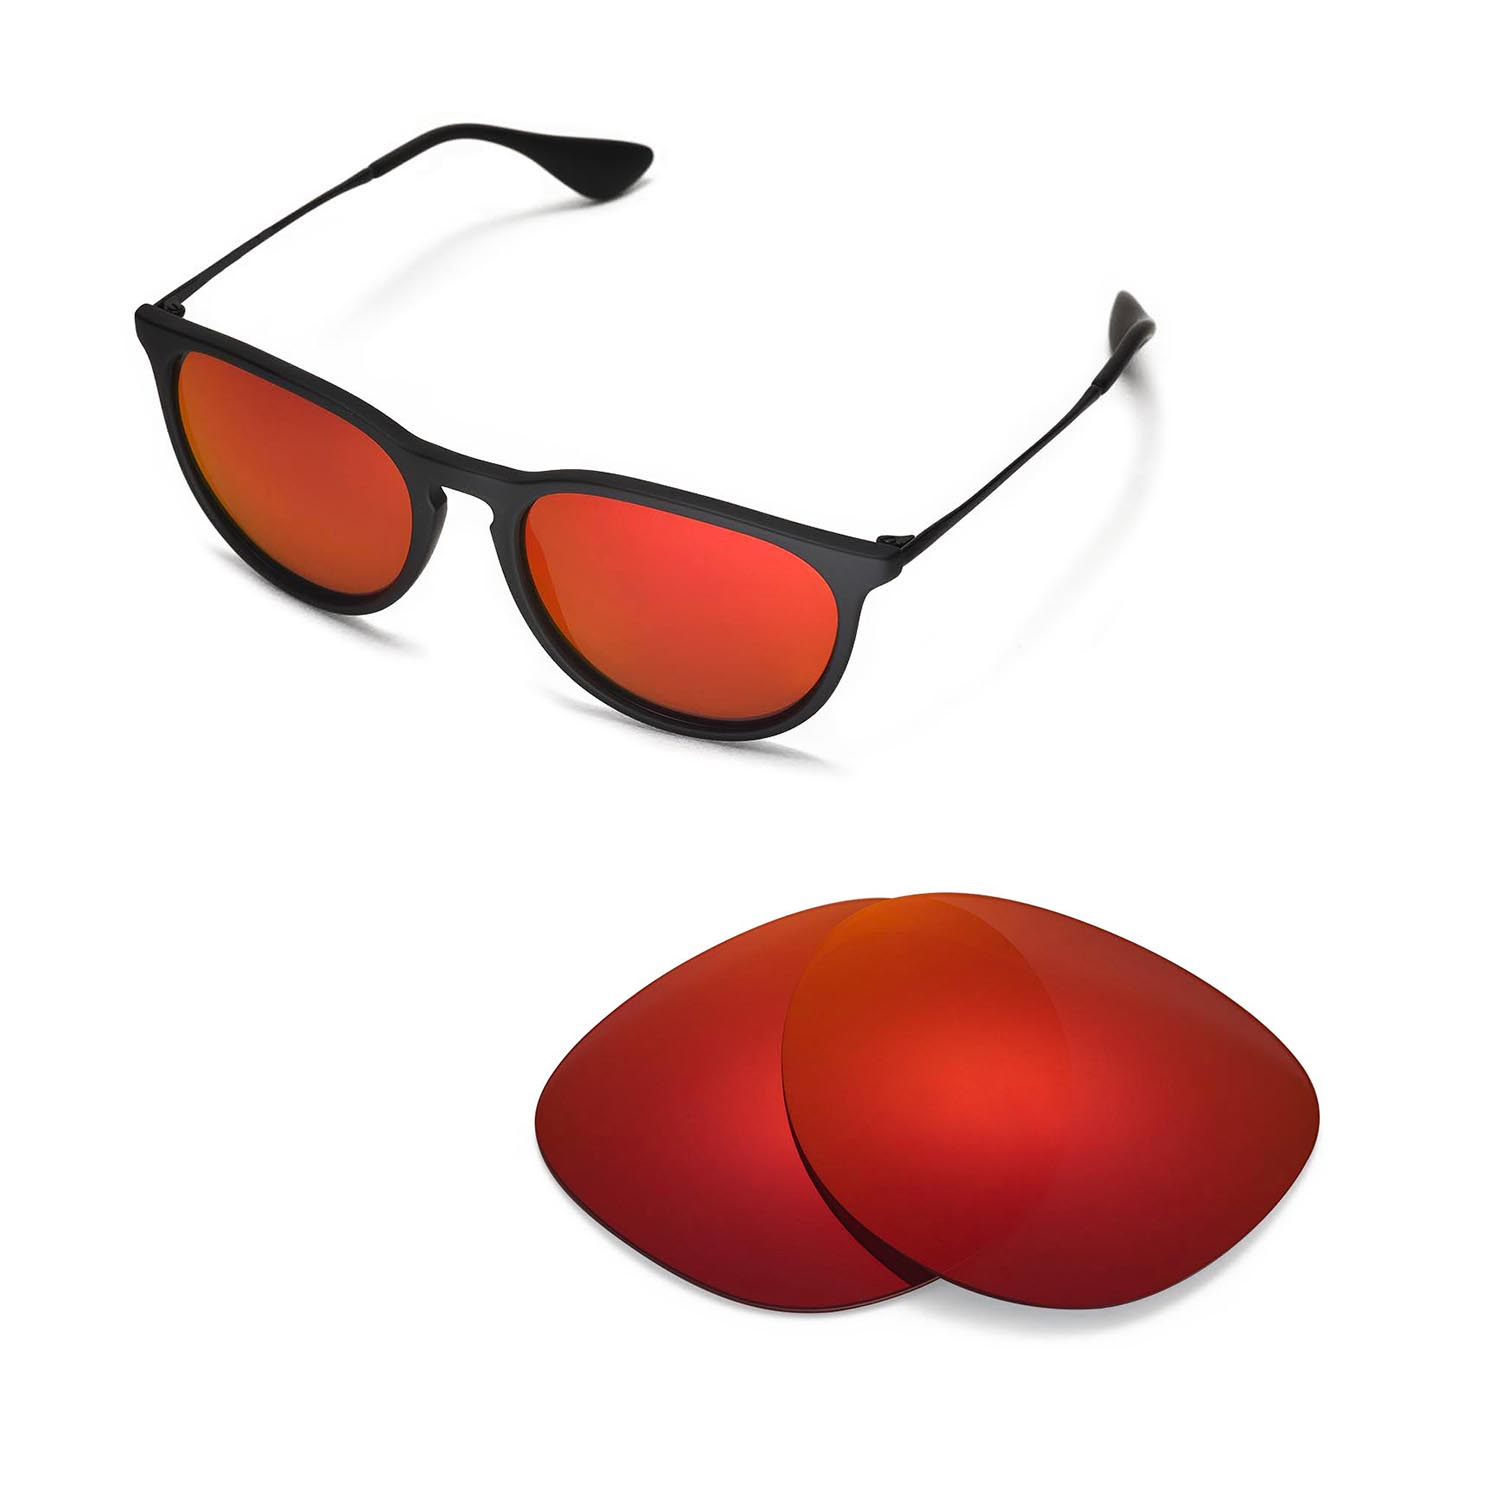 9a010c699f Details about New Walleva Polarized Fire Red Lenses For Ray-Ban Erika  RB4171 54m Sunglasses